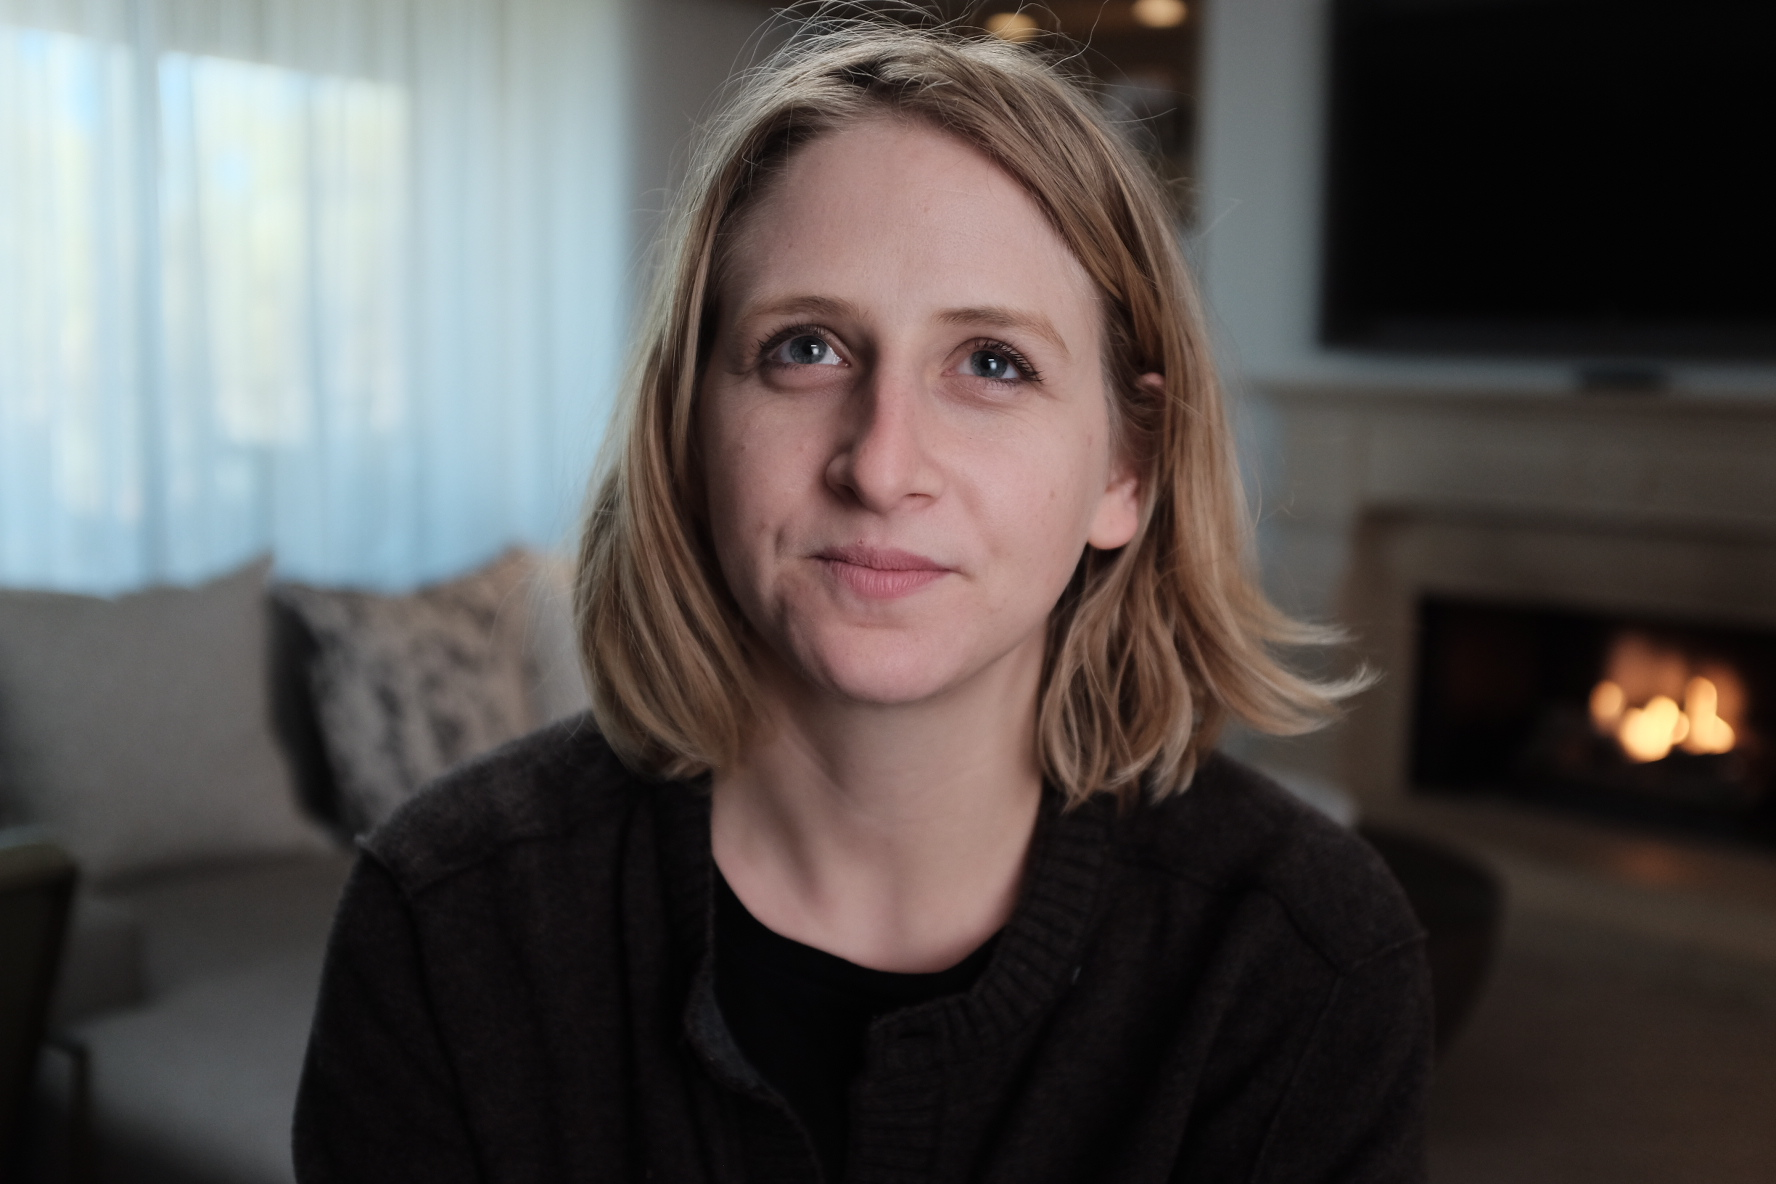 SARAH WINSHALL - Sarah Winshall is an independent producer championing personal films with unique worldviews. She produced Bridey Elliott's 2018 dark comedy CLARA'S GHOST, and the 2018 documentary from director Jenny Murray, ¡LAS SANDINISTAS!. Other work includes Andrew Hevia's 2019 experimental documentary, LEAVE THE BUS THROUGH THE BROKEN WINDOW, Albert Birney and Kentucker Audley's upcoming STRAWBERRY MANSION, and several award-winning short films. She also dabbles as a film critic with pieces published in FILMMAKER Magazine, Screen Slate, and Under the Radar.